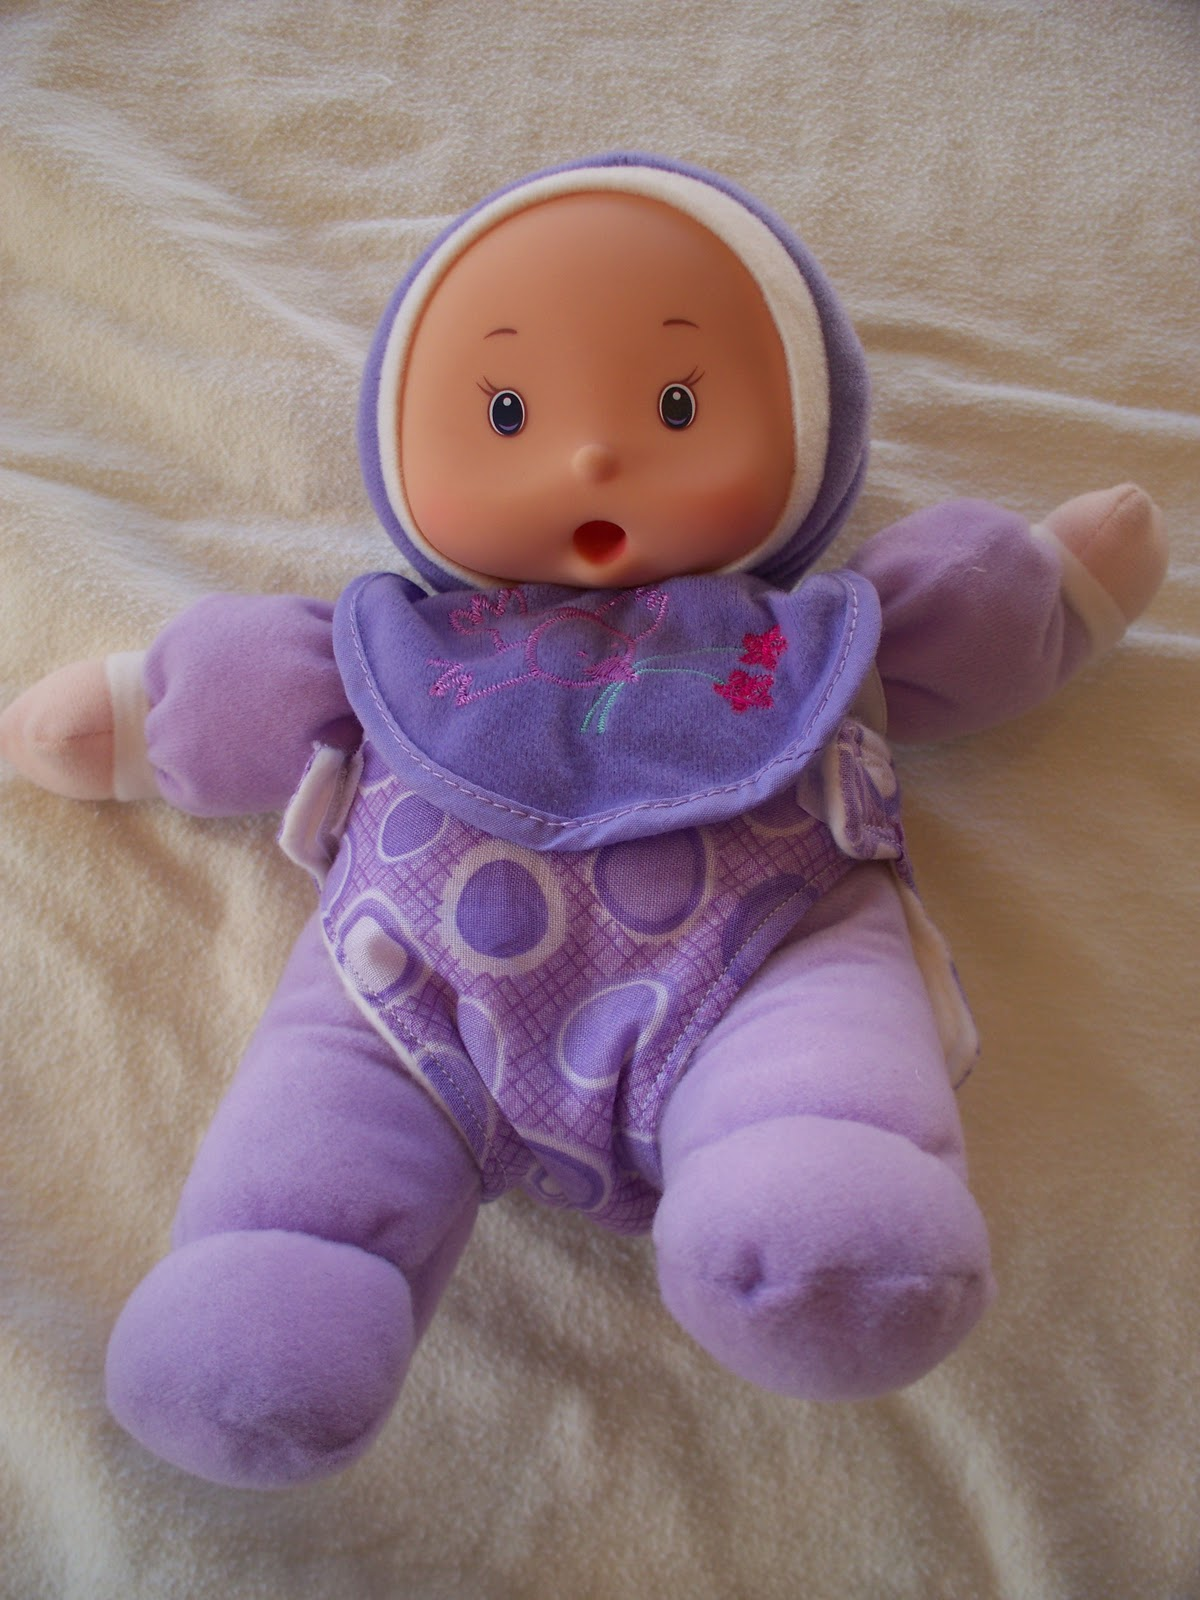 how to make a diaper for a baby doll